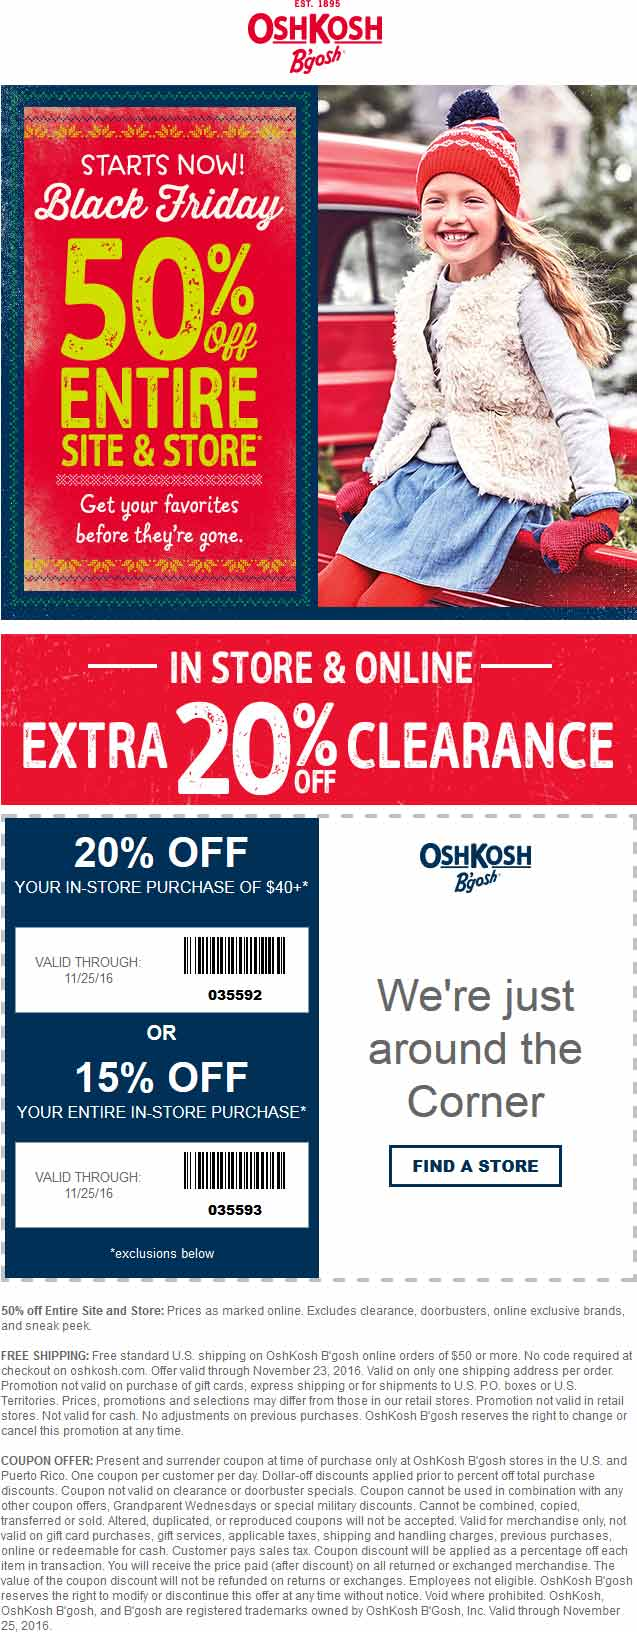 Never miss another coupon. Be the first to learn about new coupons and deals for popular brands like Carter's with the Coupon Sherpa weekly newsletters.